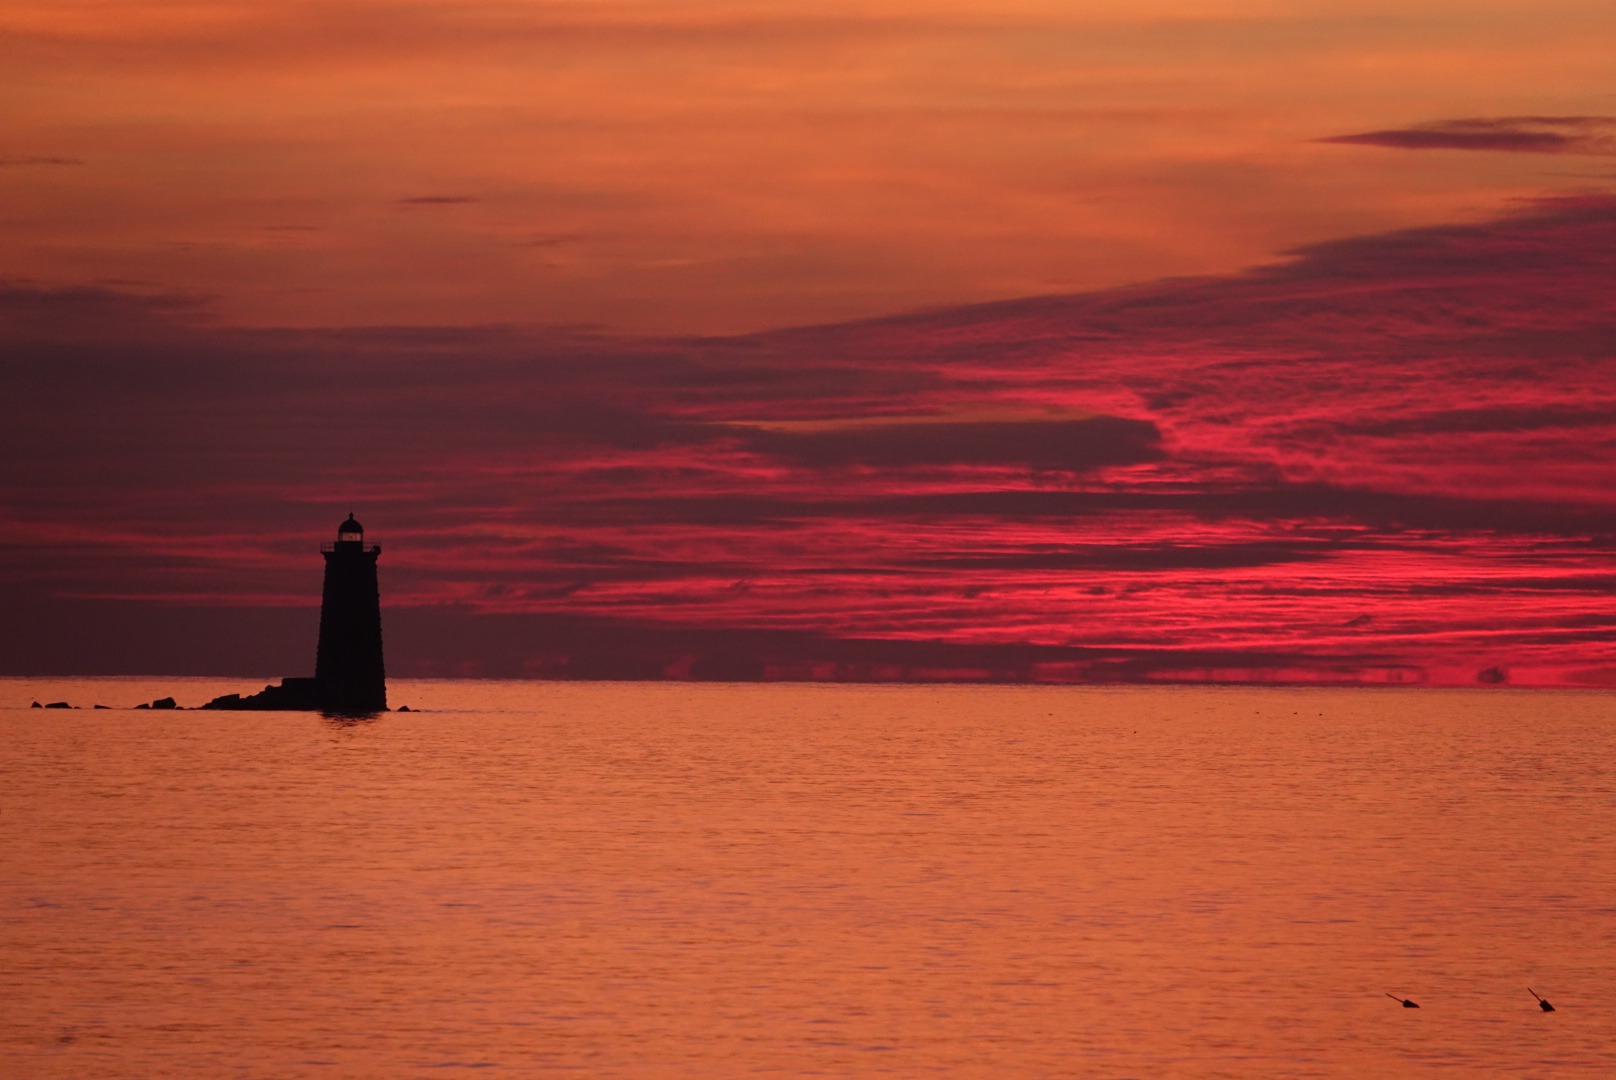 Picture of the light house surrounded by red sky